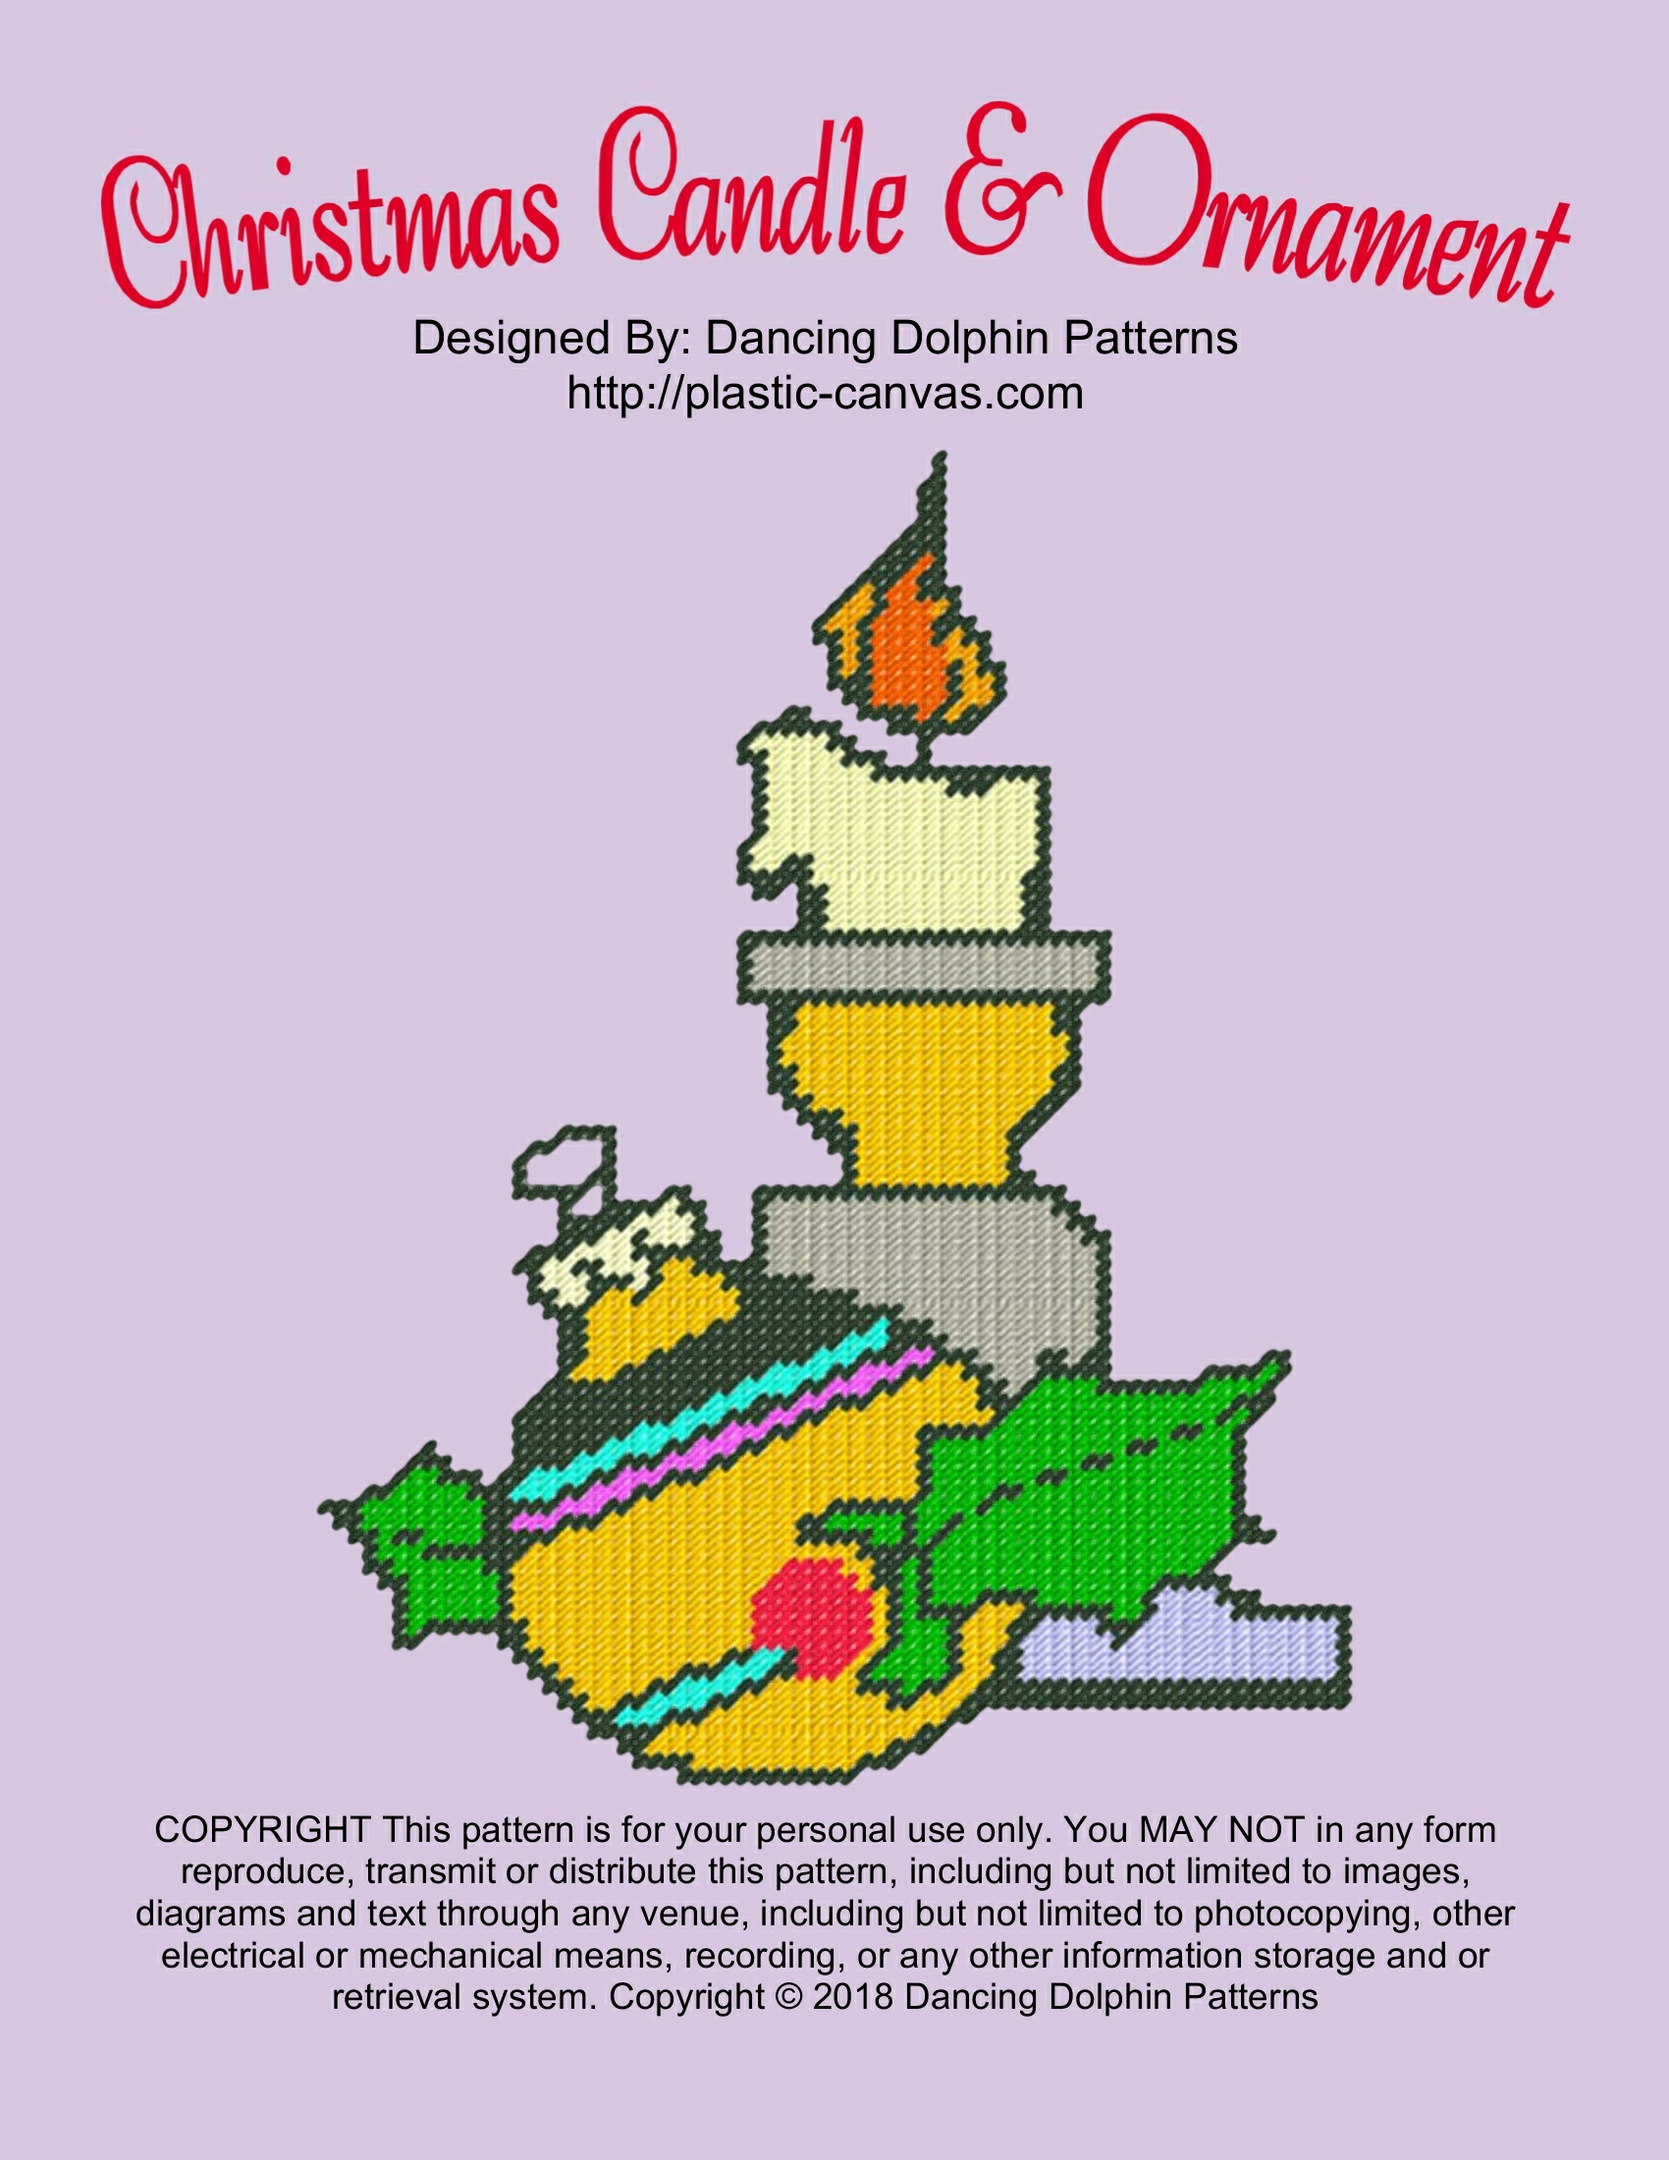 605 - Christmas Candle & Ornament